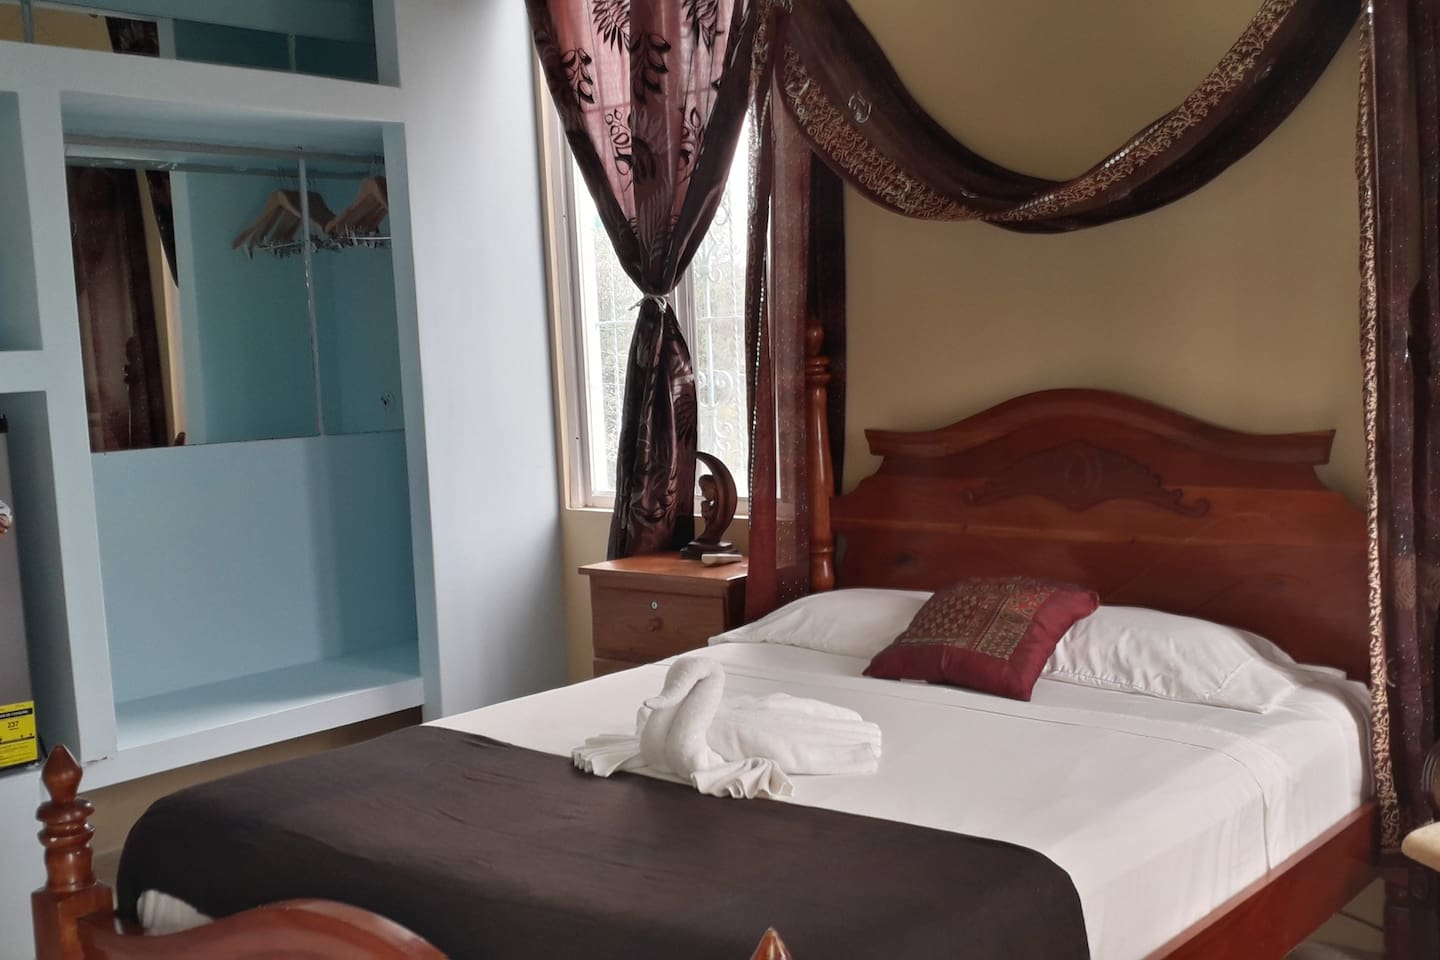 Elegant and spacious bedroom overlooking the breathtaking Caribbean Sea! Comes with Mahogany elegant queen bed, air conditioner, fans, windows and door for maximum comfort and satisfaction.